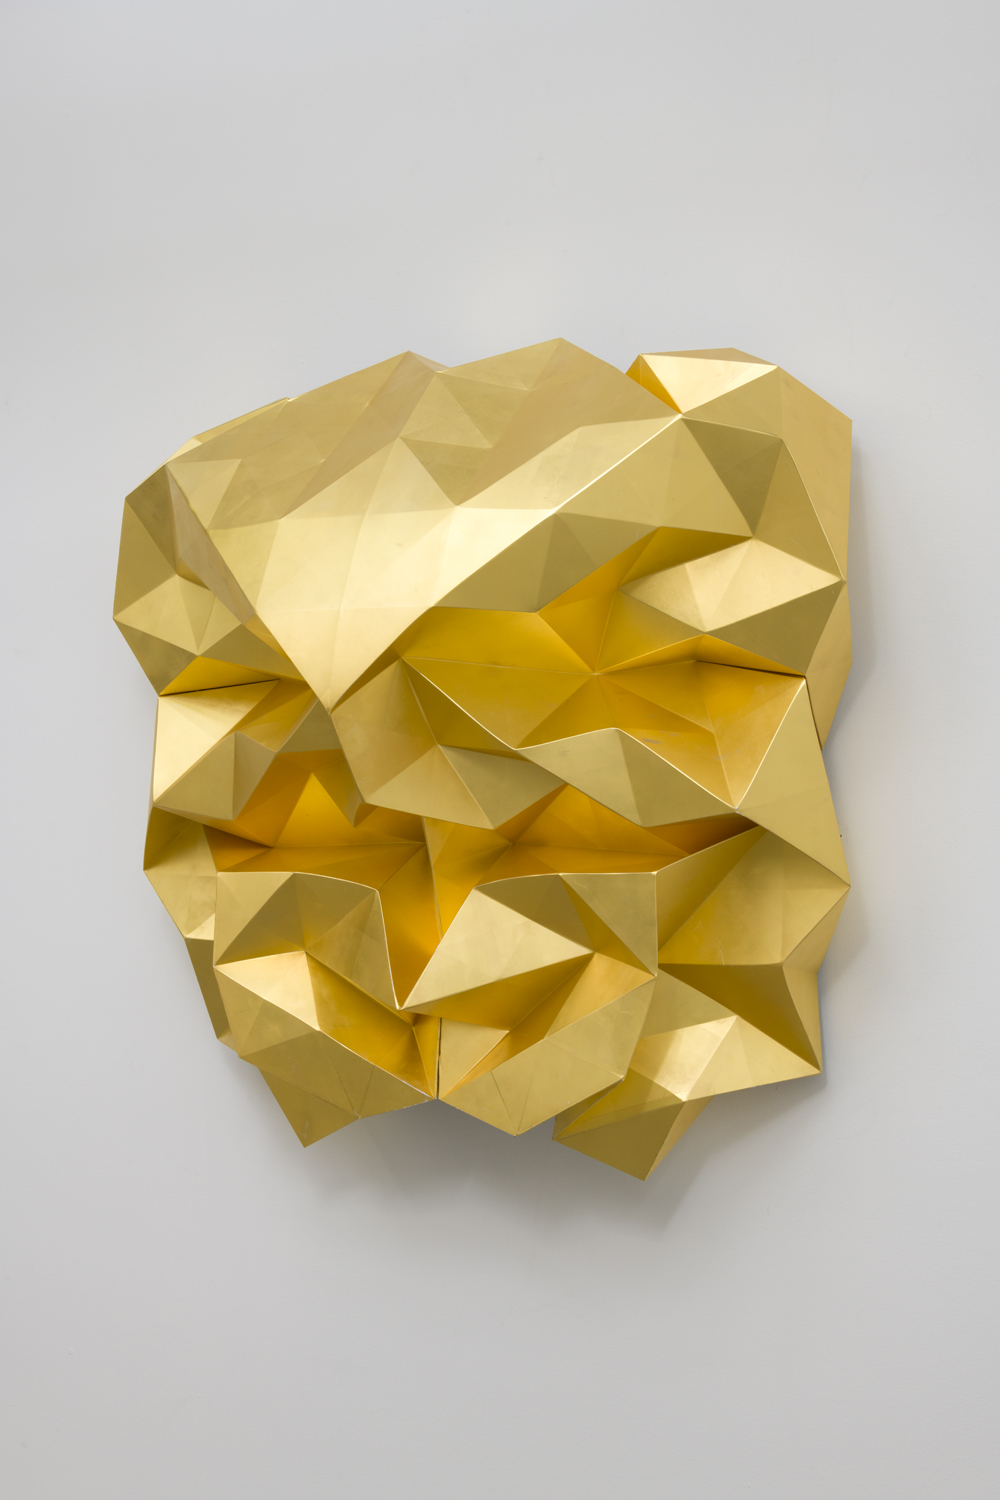 Matthew Monahan, Solaris, 2017 gold leaf and aluminum 42 x 39 x 18 inches